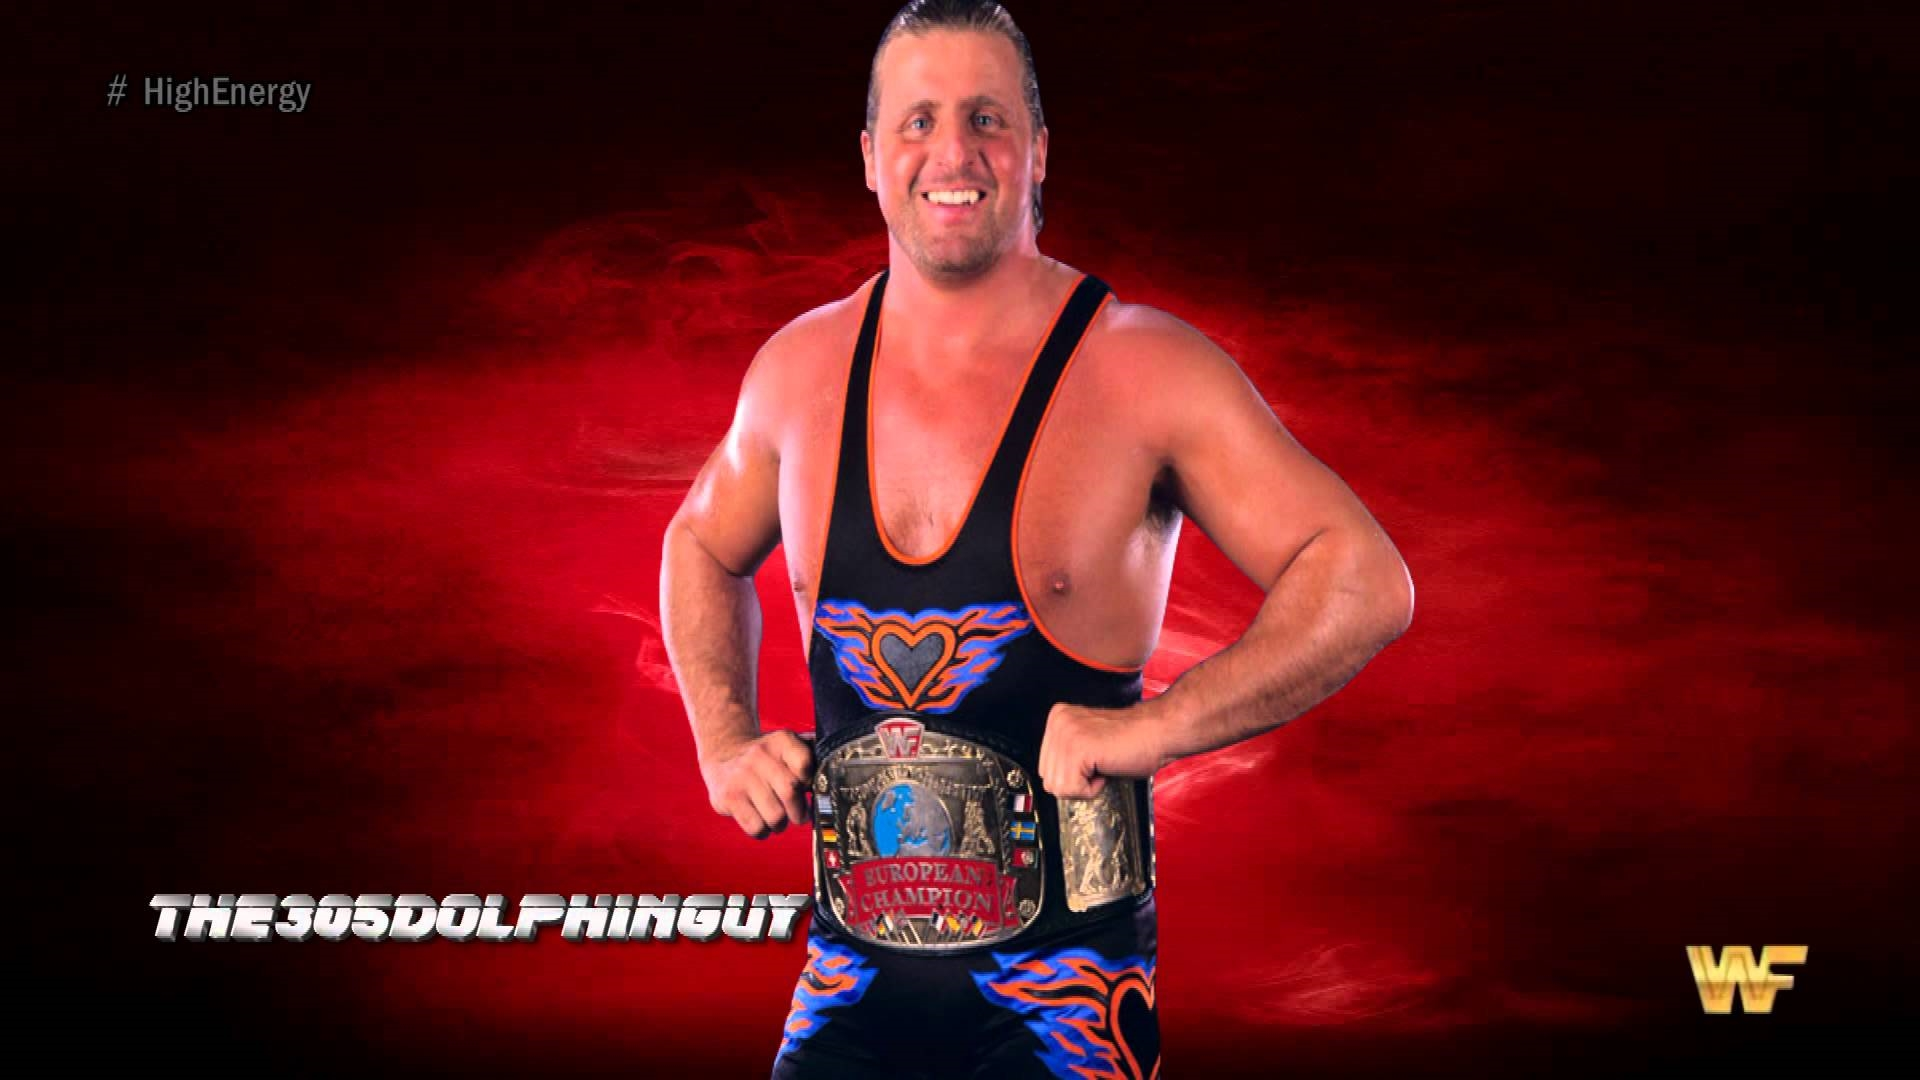 Super Cars And Bikes Hd Wallpapers Owen Hart Wwe Free Image